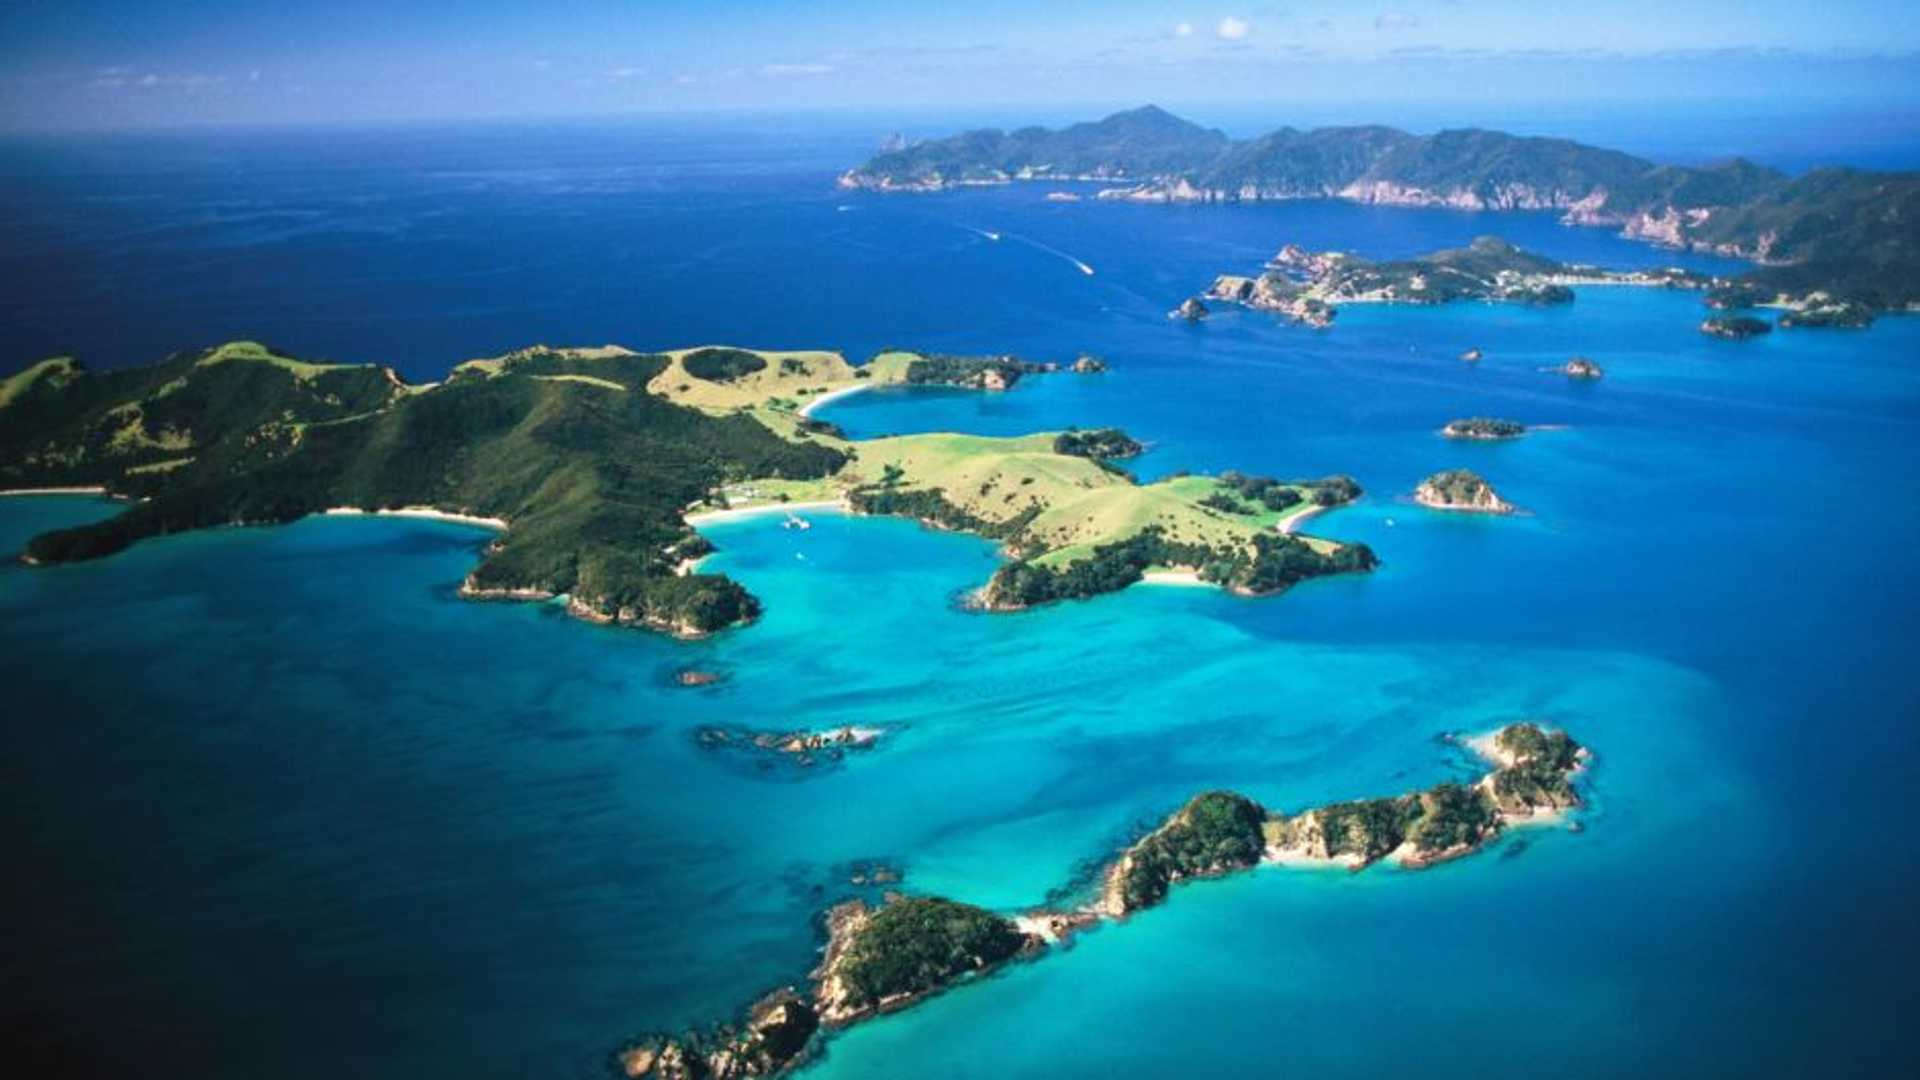 Bird's eye view of the Bay of Islands